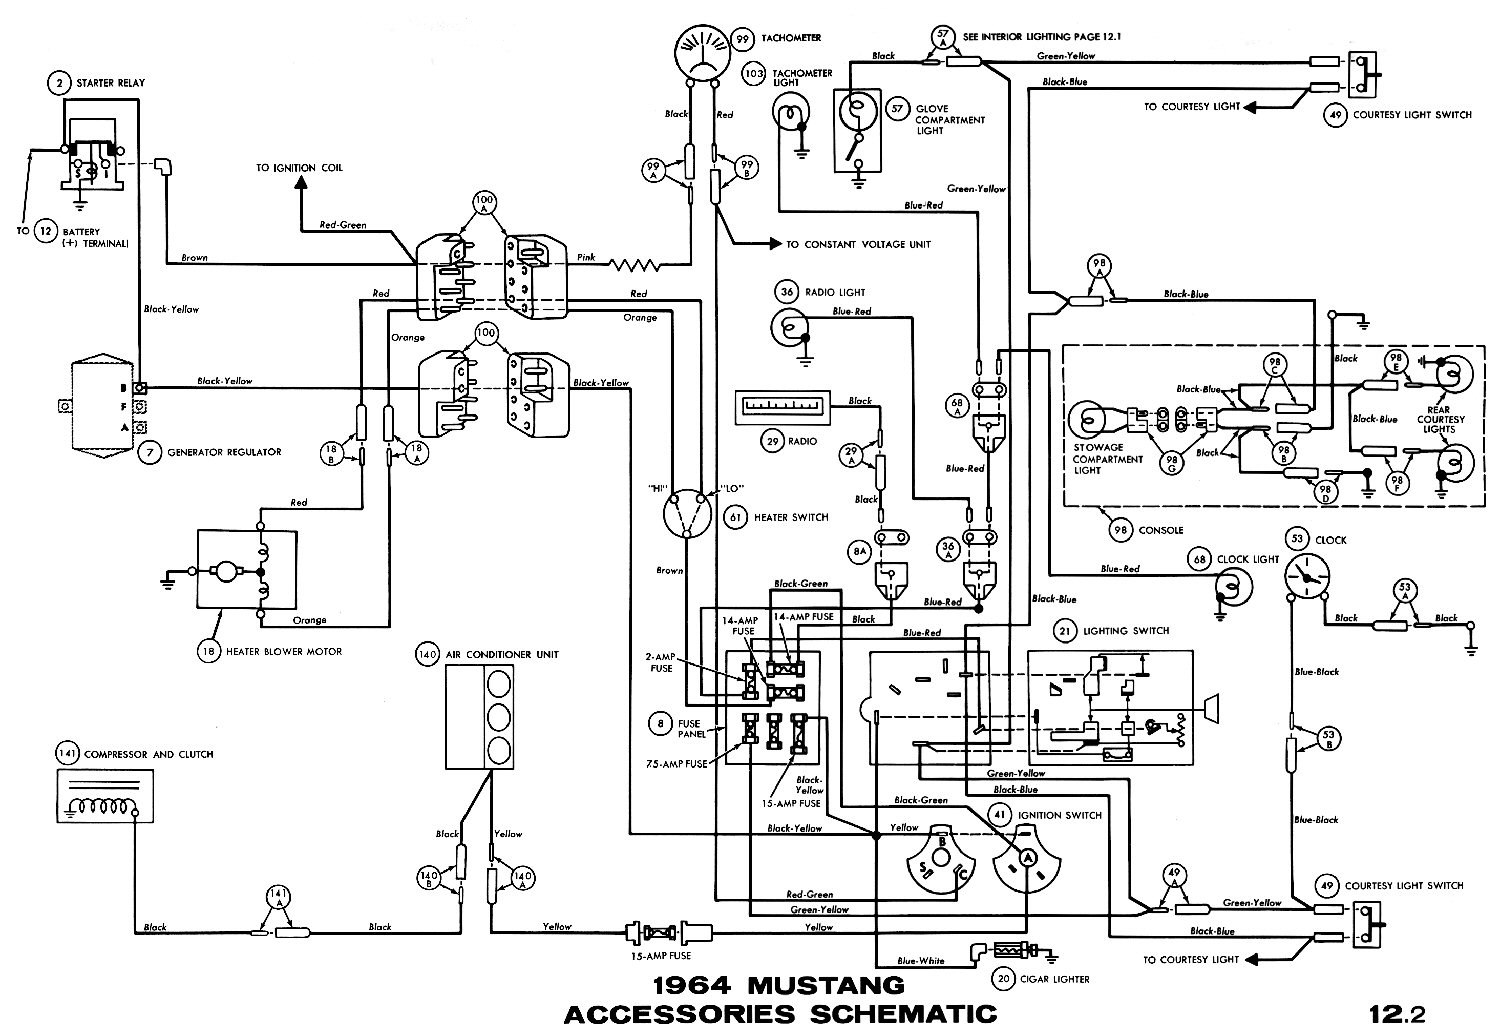 hight resolution of cj5 wiring diagram generator simple wiring schema 1974 cj5 wiring diagram 1965 cj5 wiring diagram